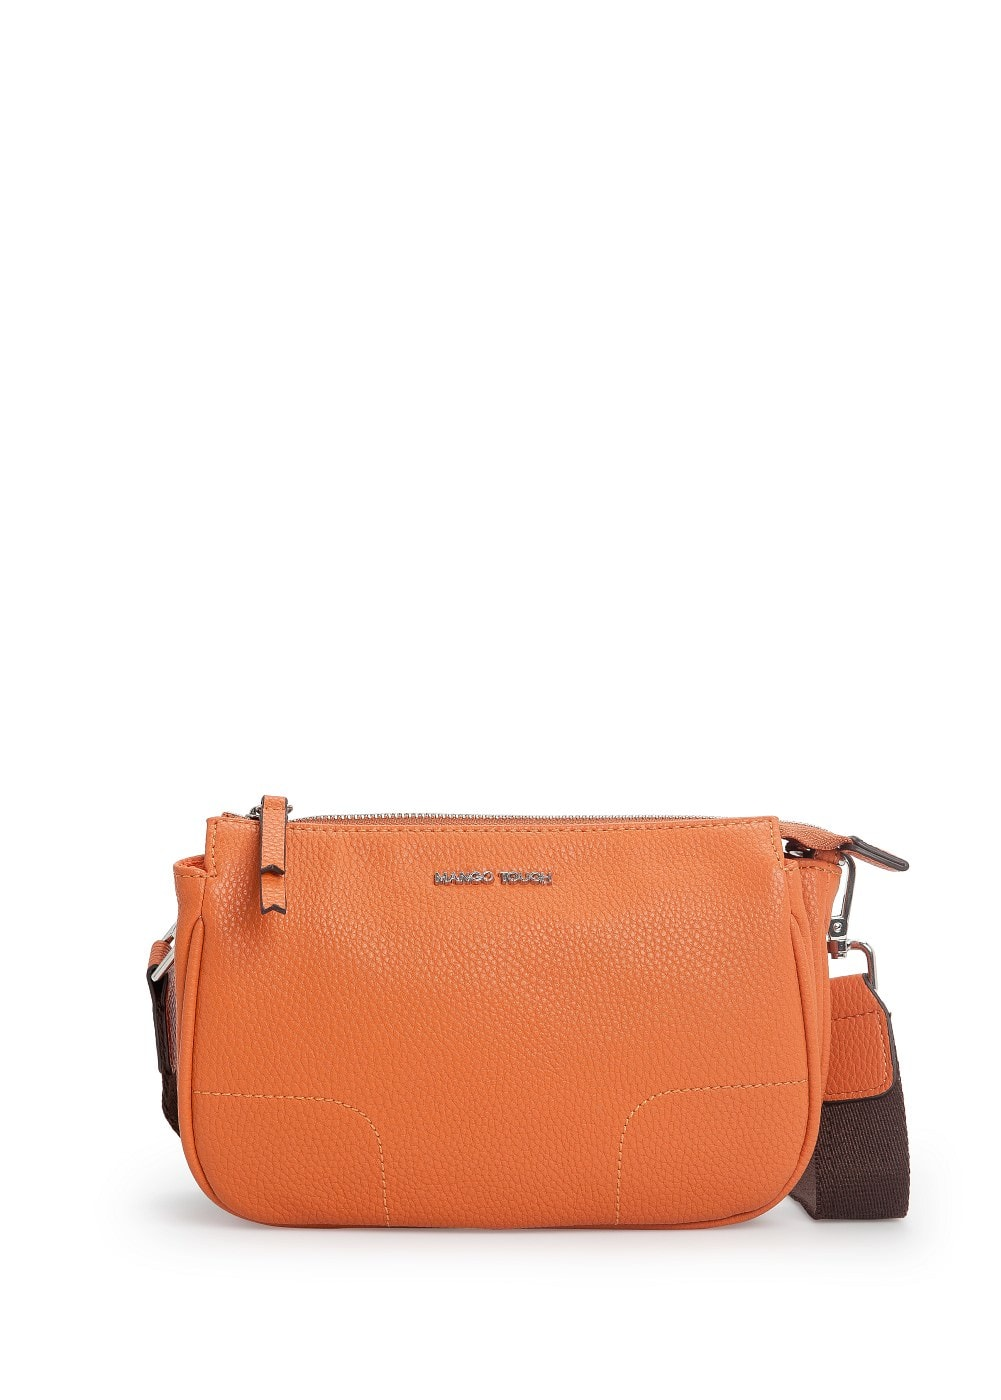 Double compartment cross body bag